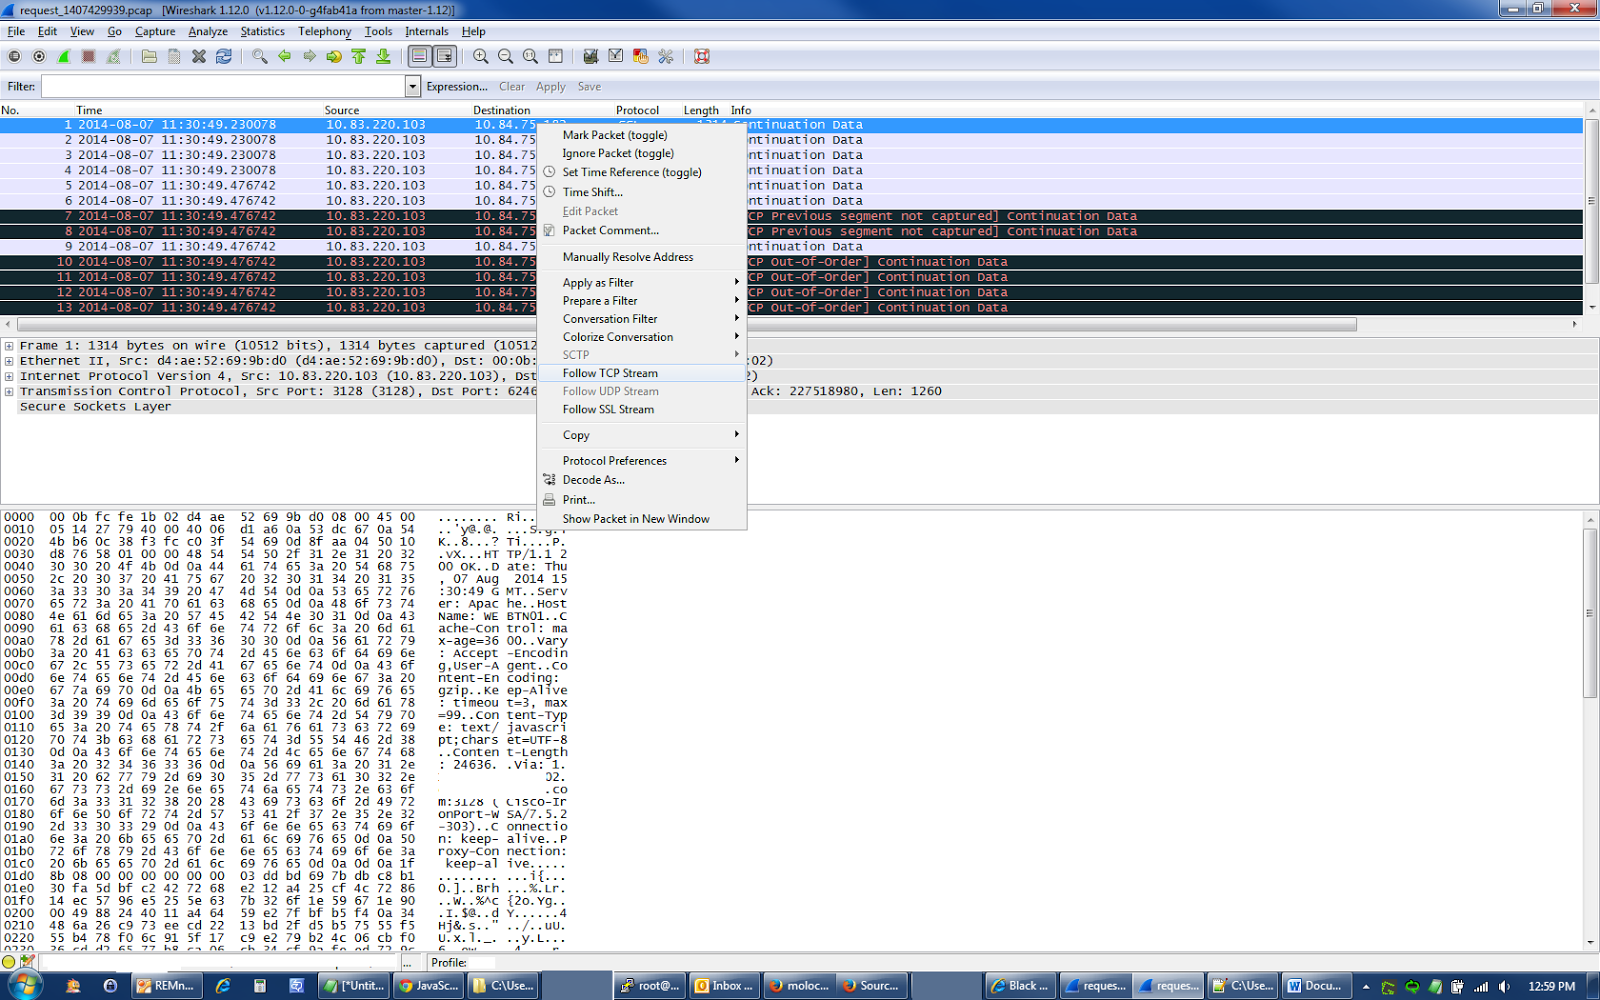 how to read packet data in wireshark